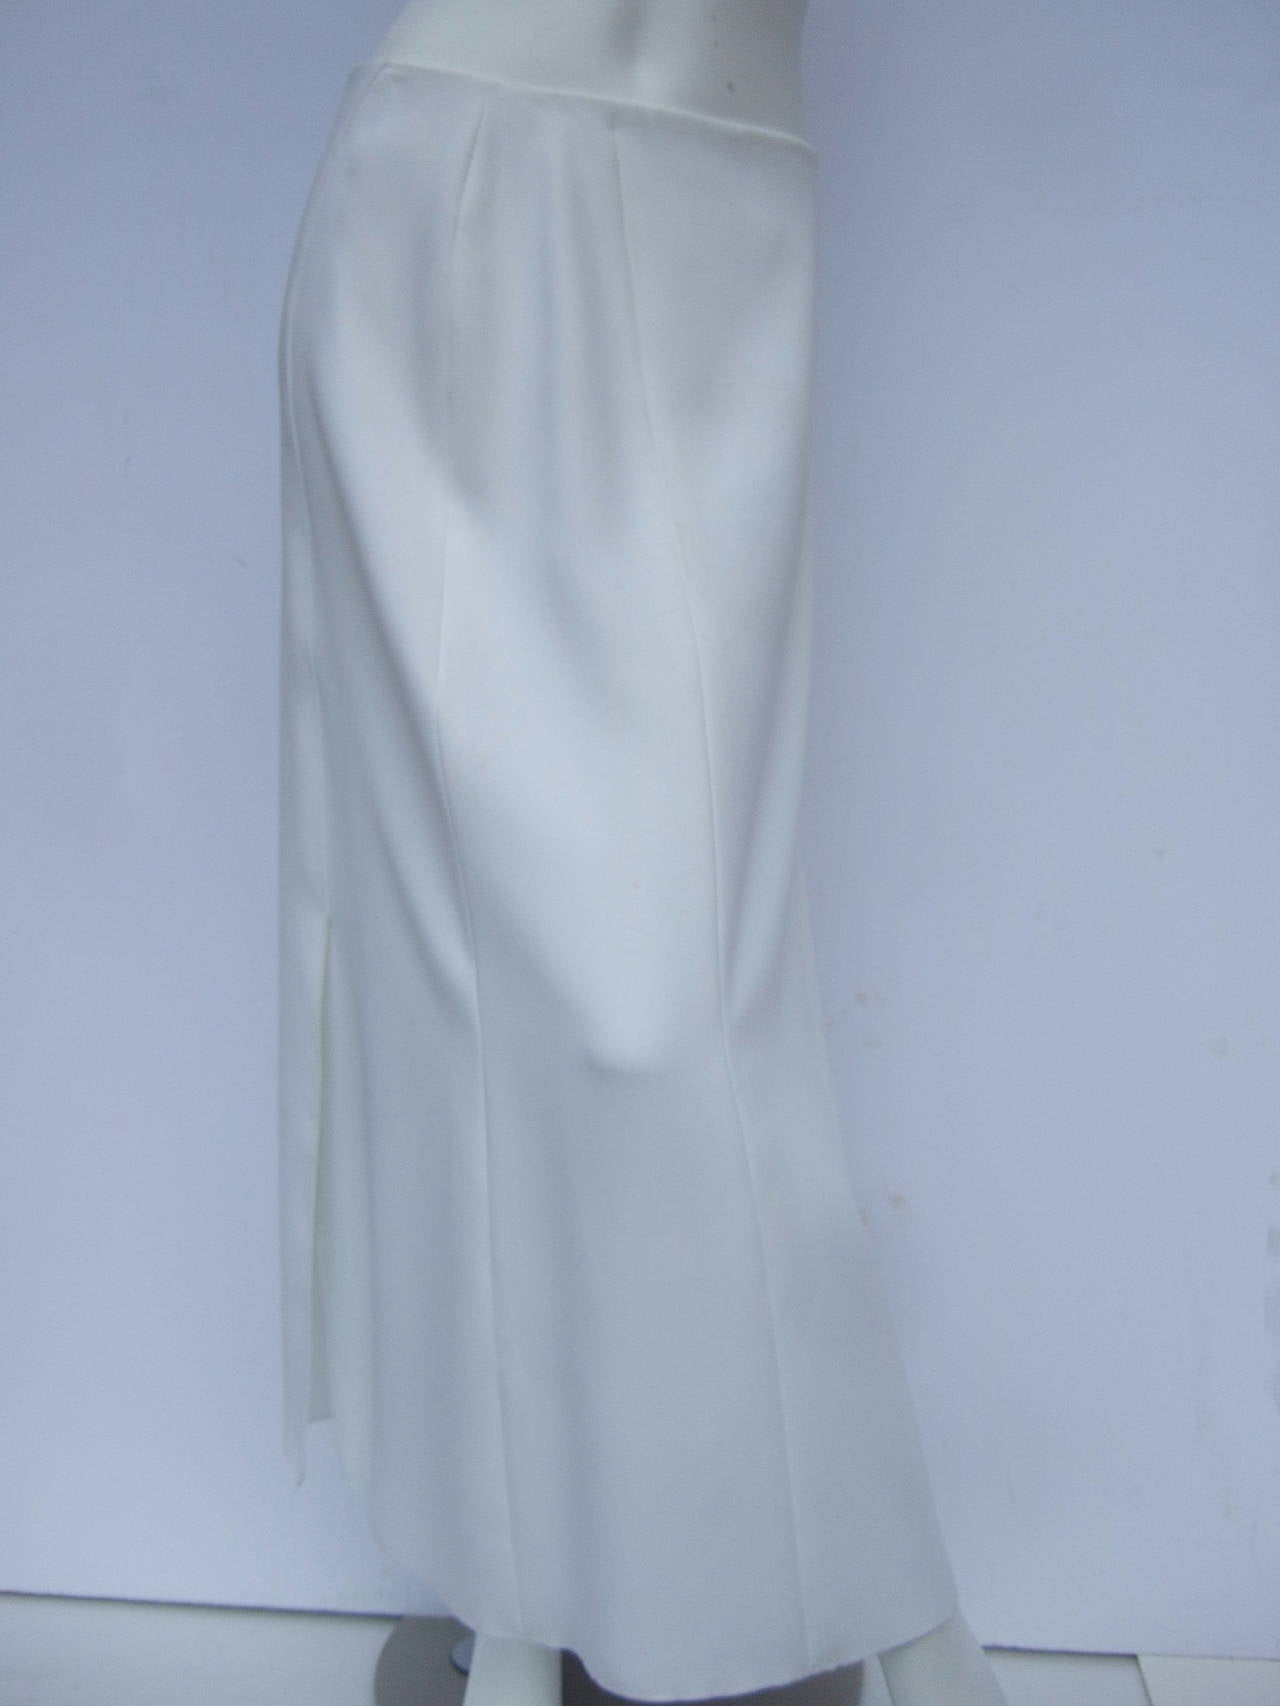 Chanel elegant chic long white skirt Size 40 The crisp high fashion skirt is designed with two dramatic slits One is on the front off center to the side. The other slit is on the back side off center as well  The slit on the front side measures